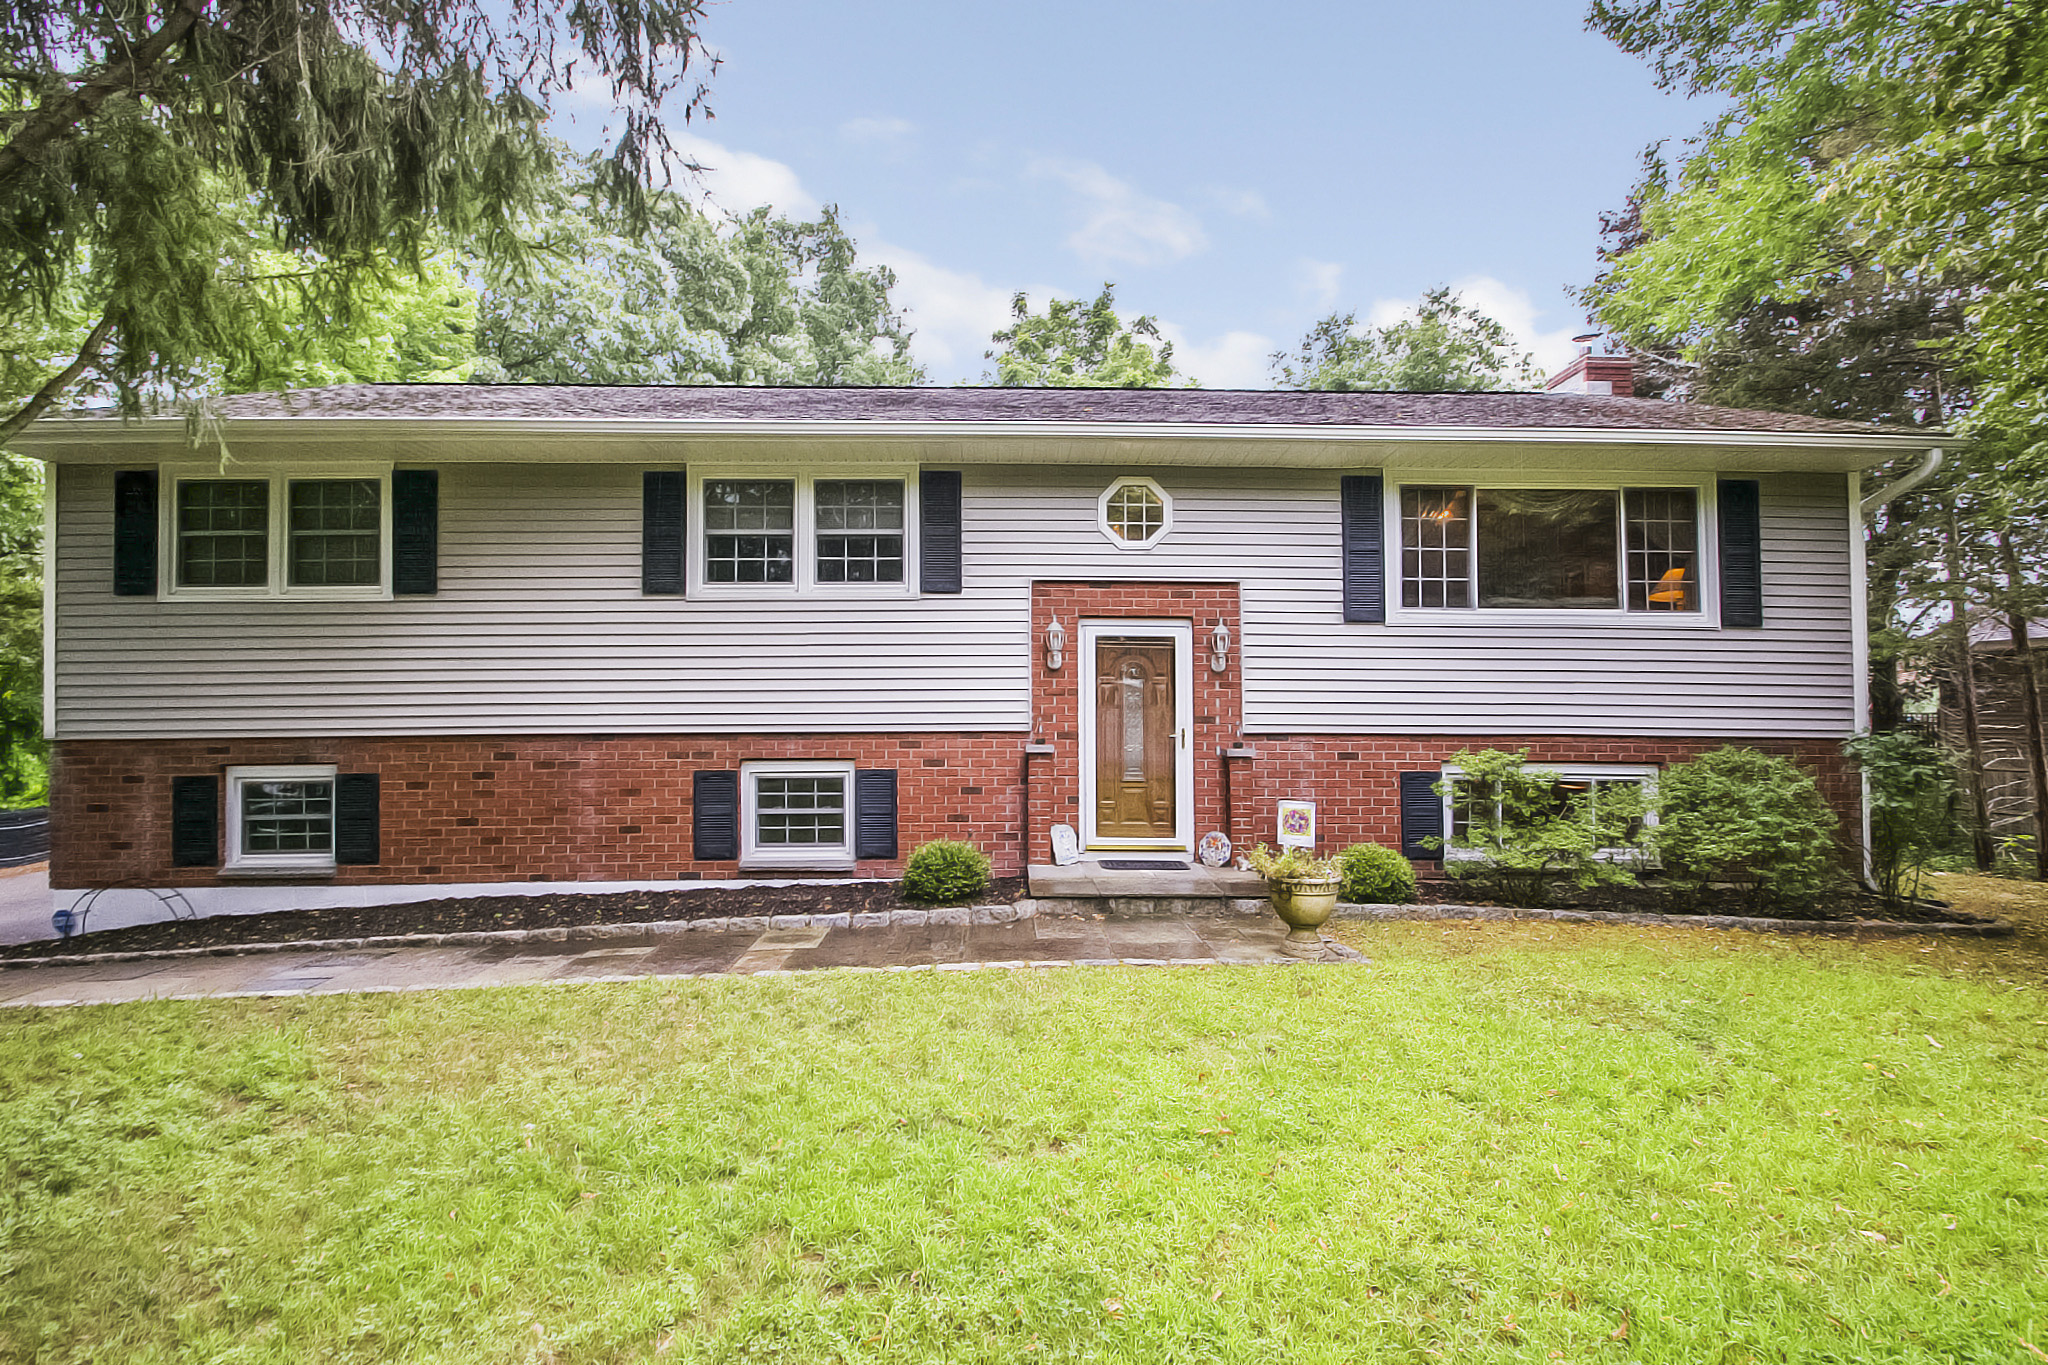 Single Family Home for Sale at Oversized Raised Ranch 25 Regen Road Danbury, Connecticut, 06811 United States